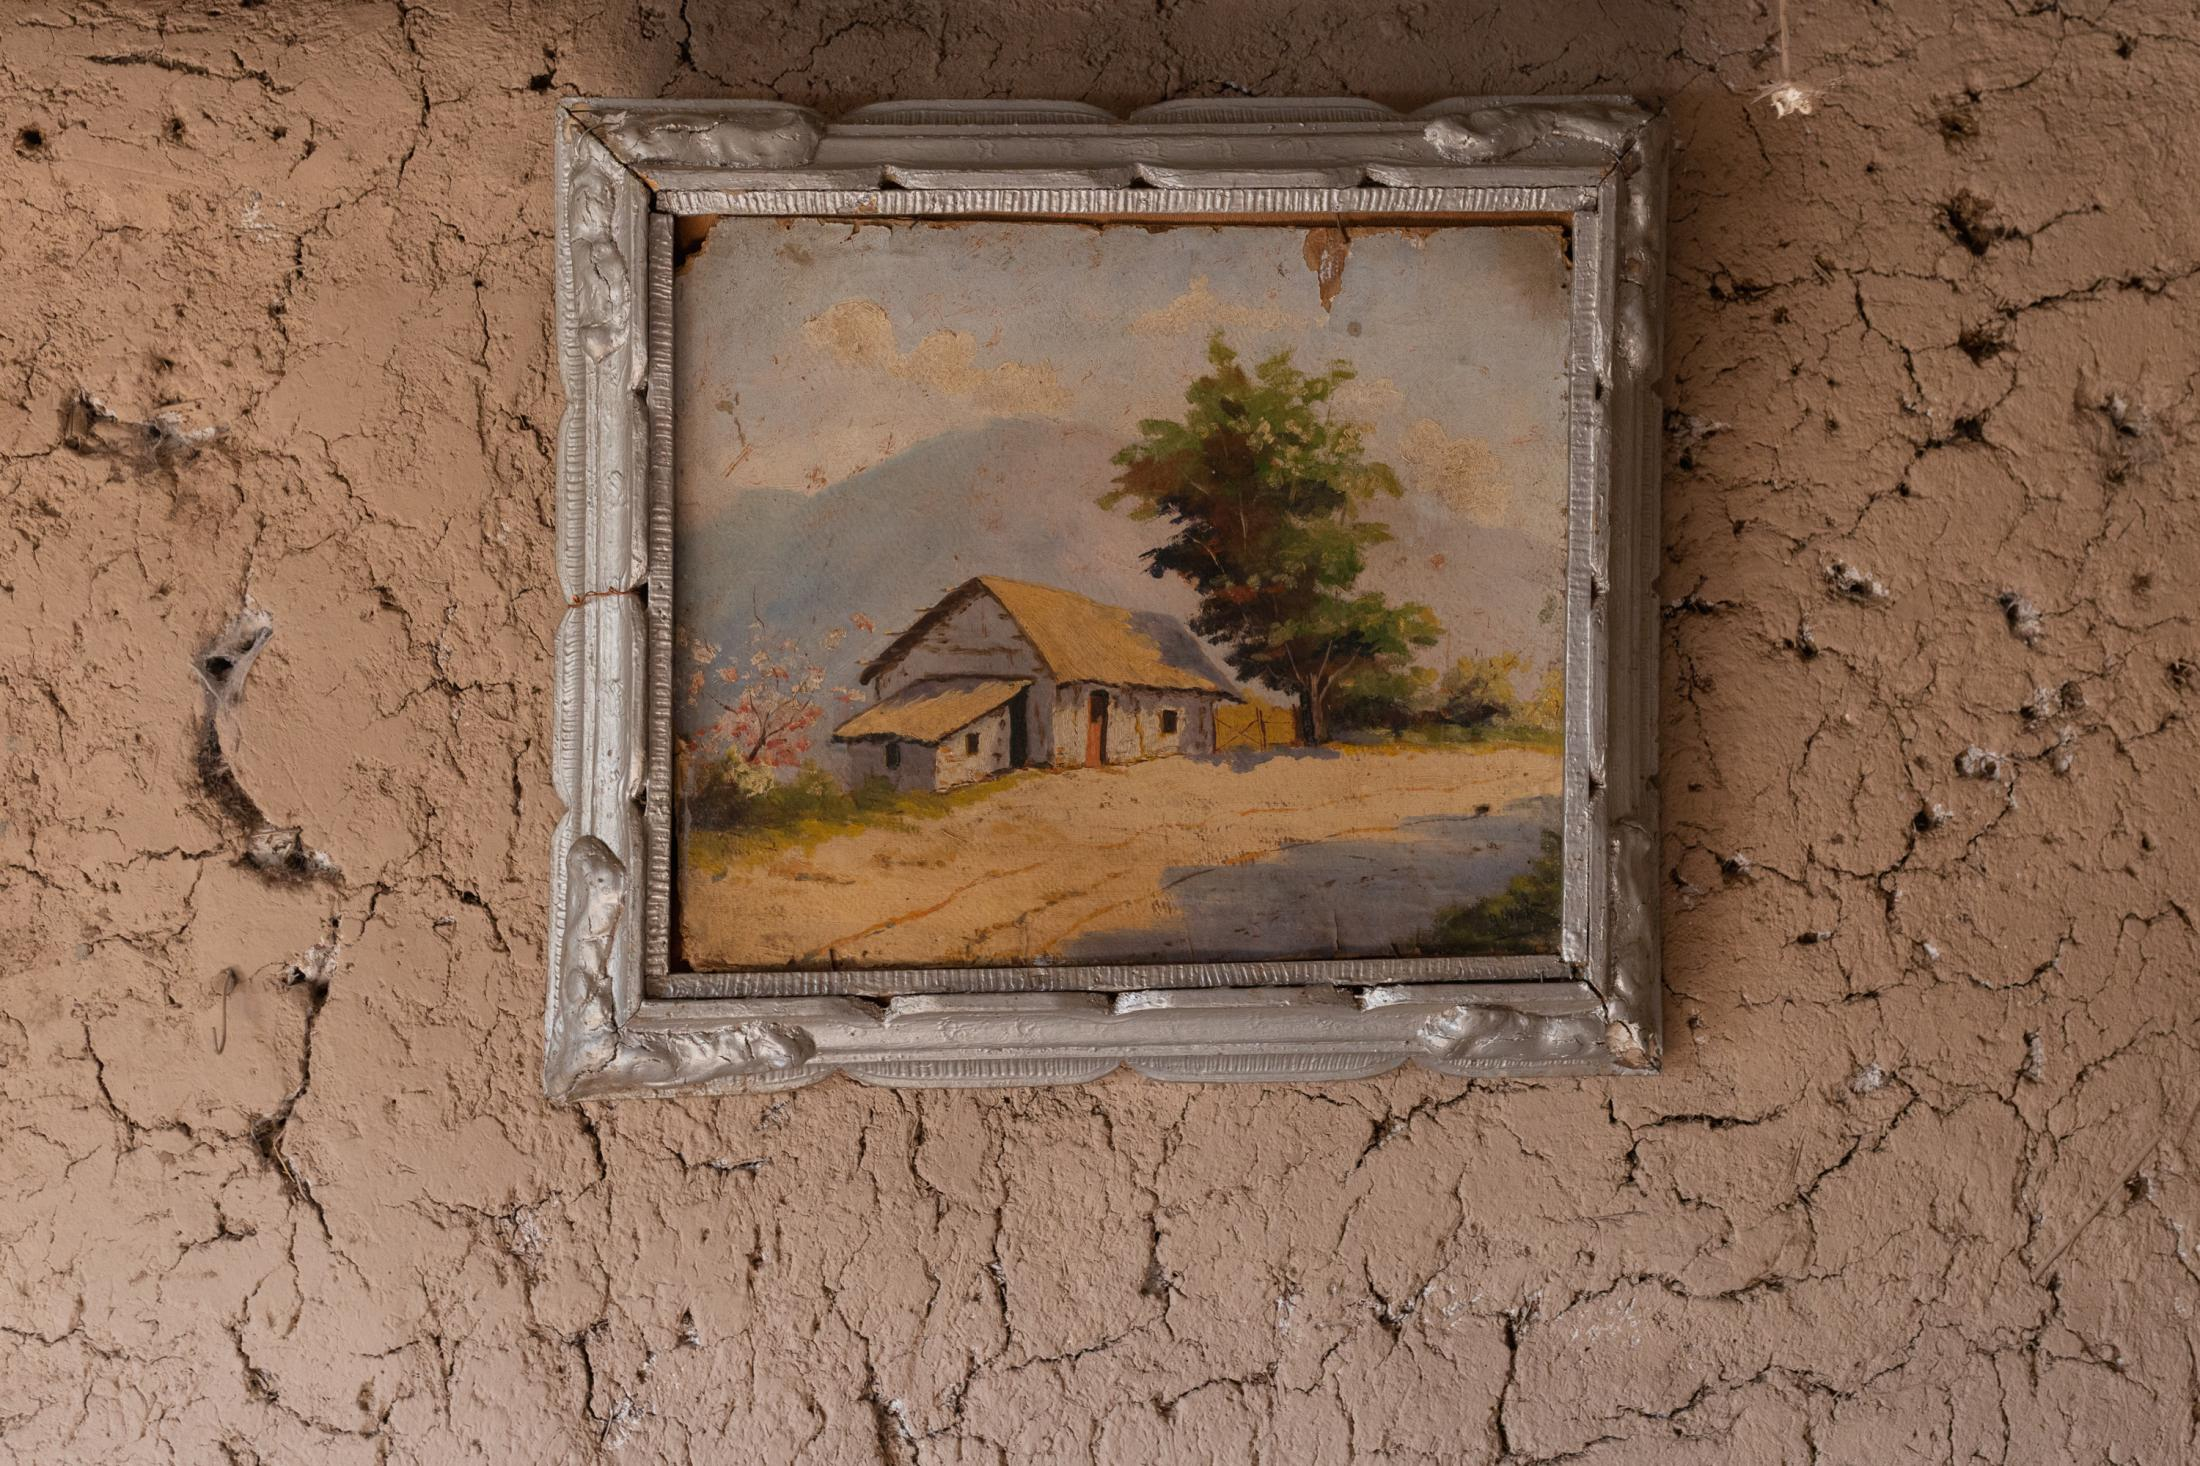 January, 2nd, 2021. Detail of the interior of a house in Quebrada De Castro. There are fewer and fewer inhabitants in this community due to the drought.